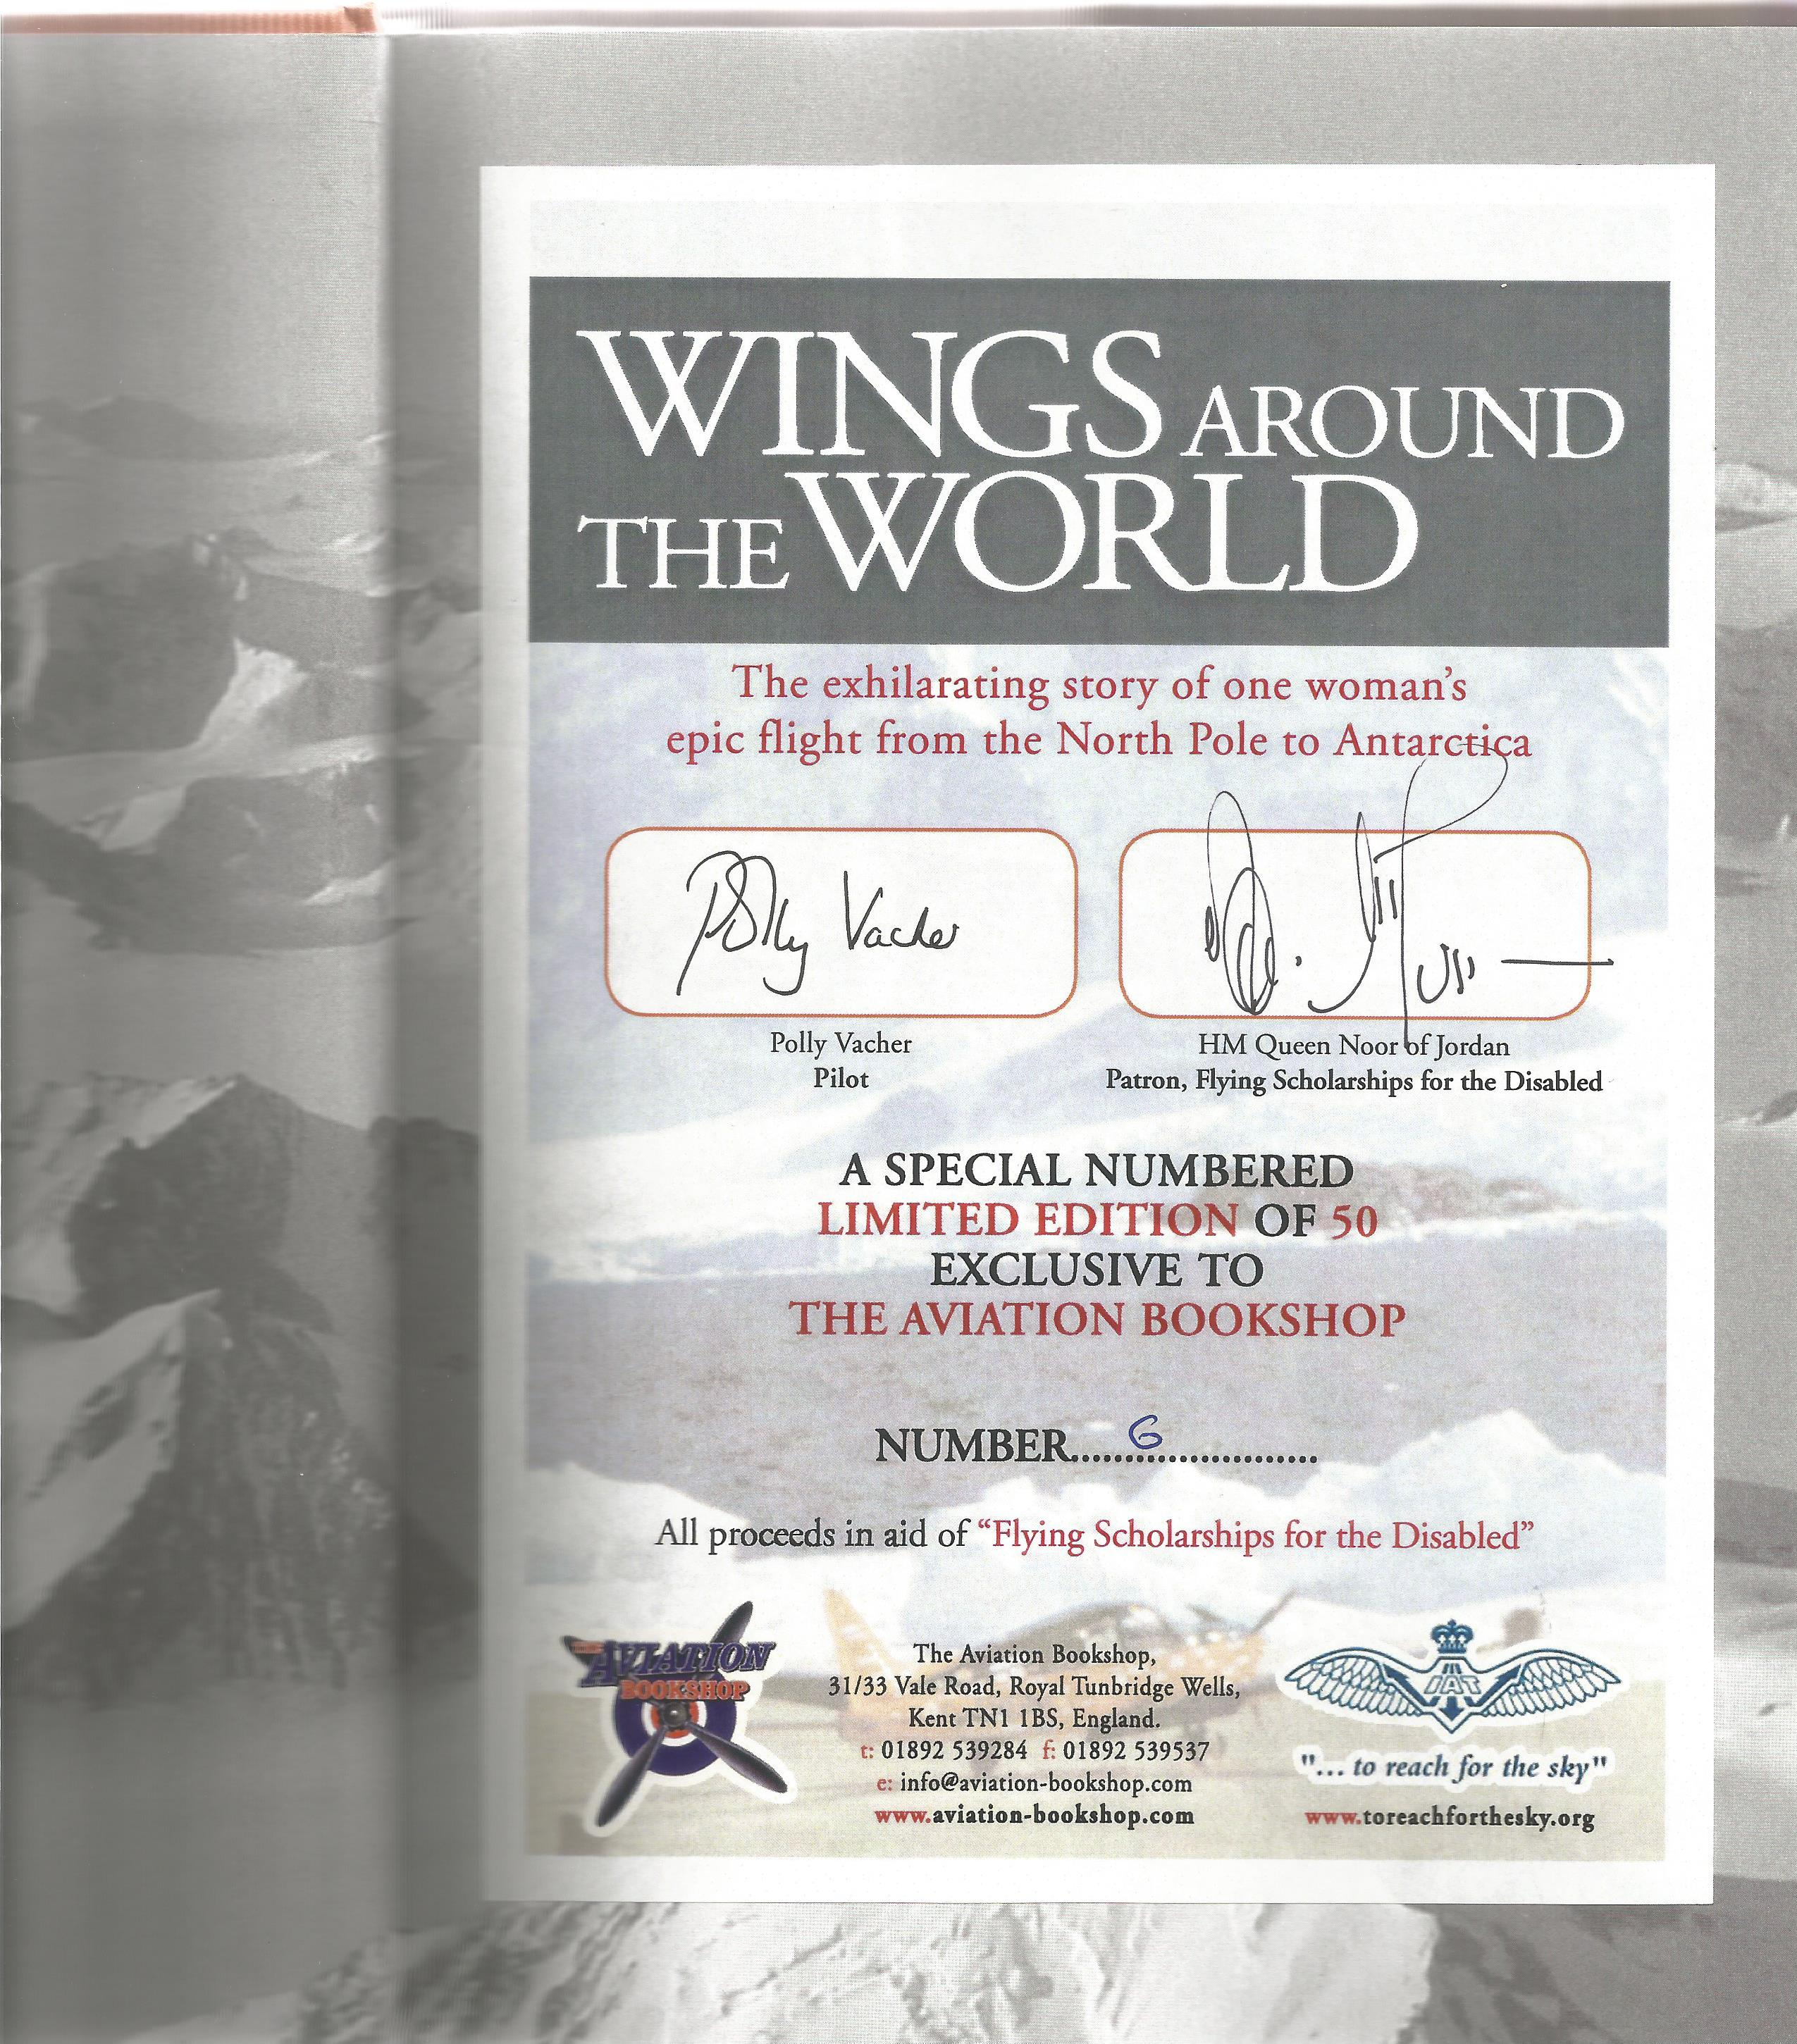 Polly Vacher. Wings Around The World. The Exhilarating story of one woman's epic flight from the - Image 2 of 3